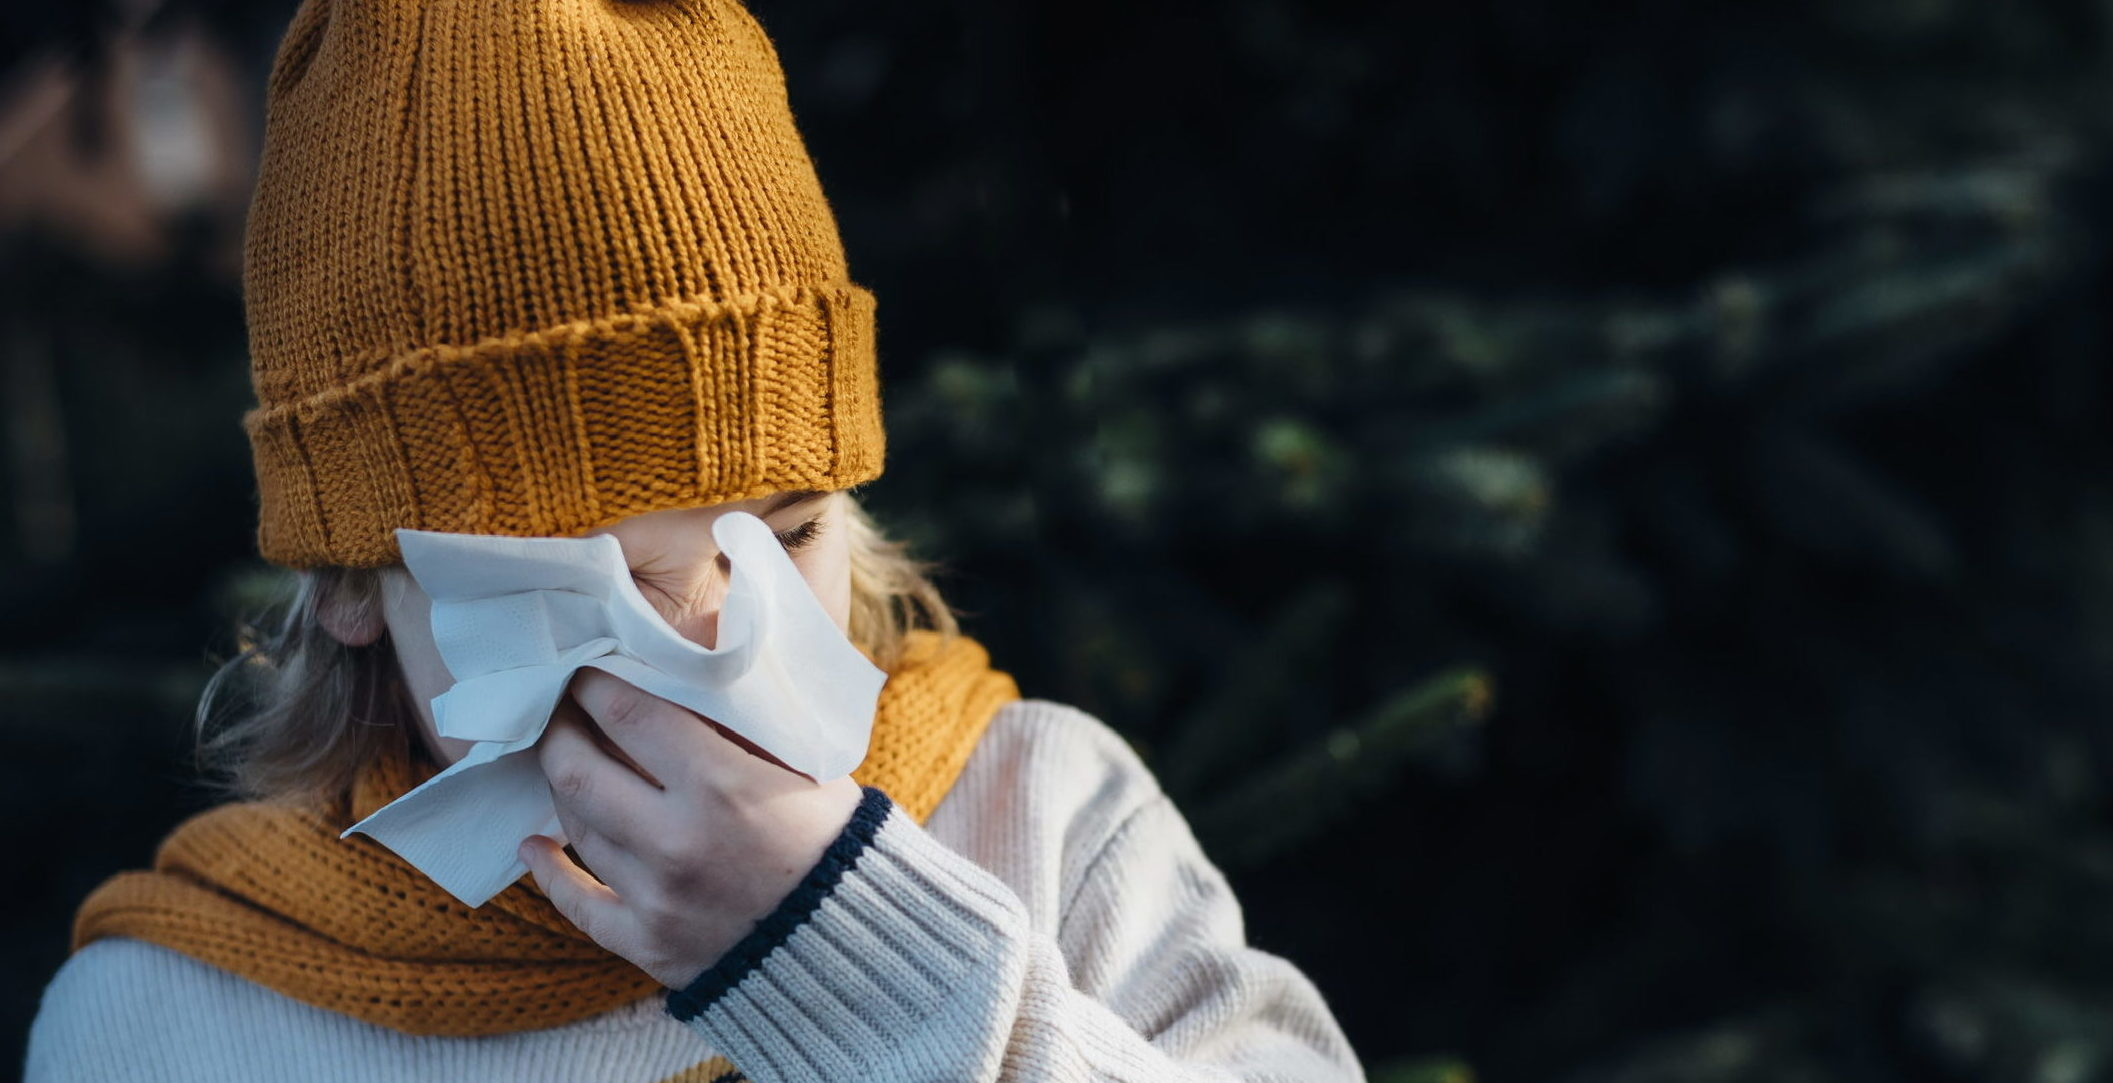 Taking Care of Children's Health in the Cool Season